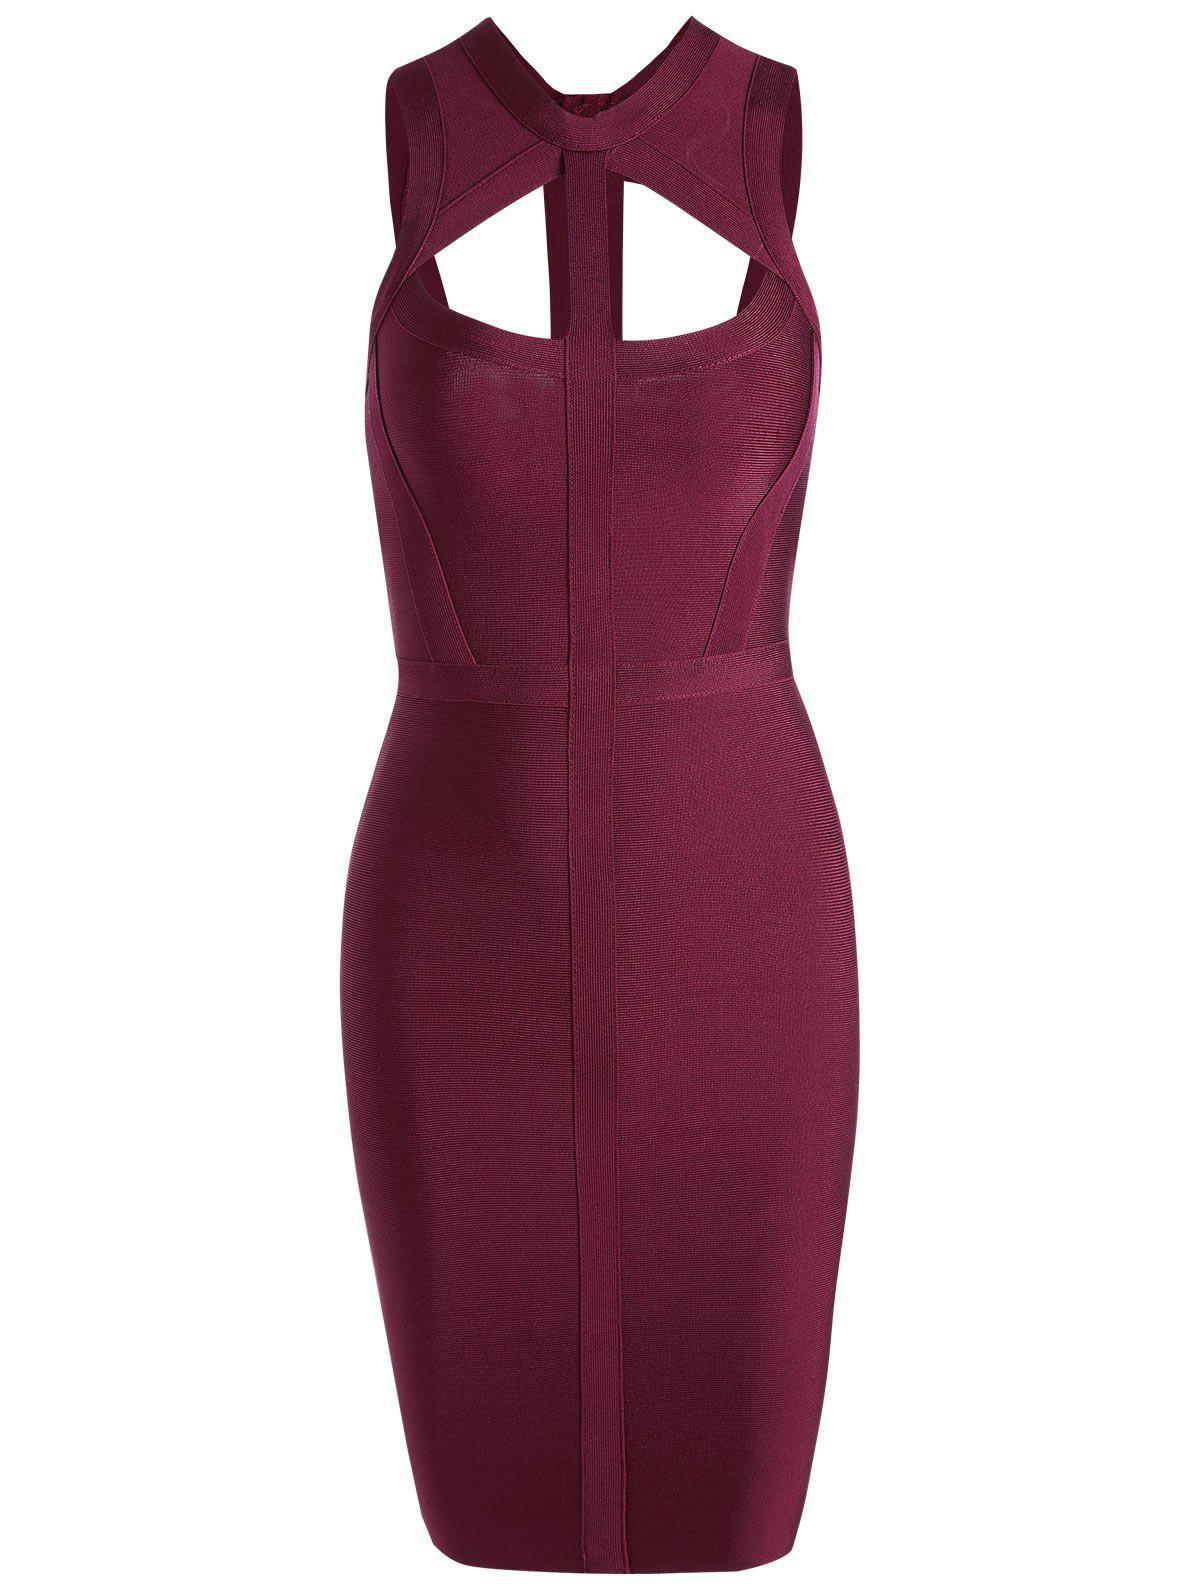 New Caged Cut Out Bodycon Bandage Dress